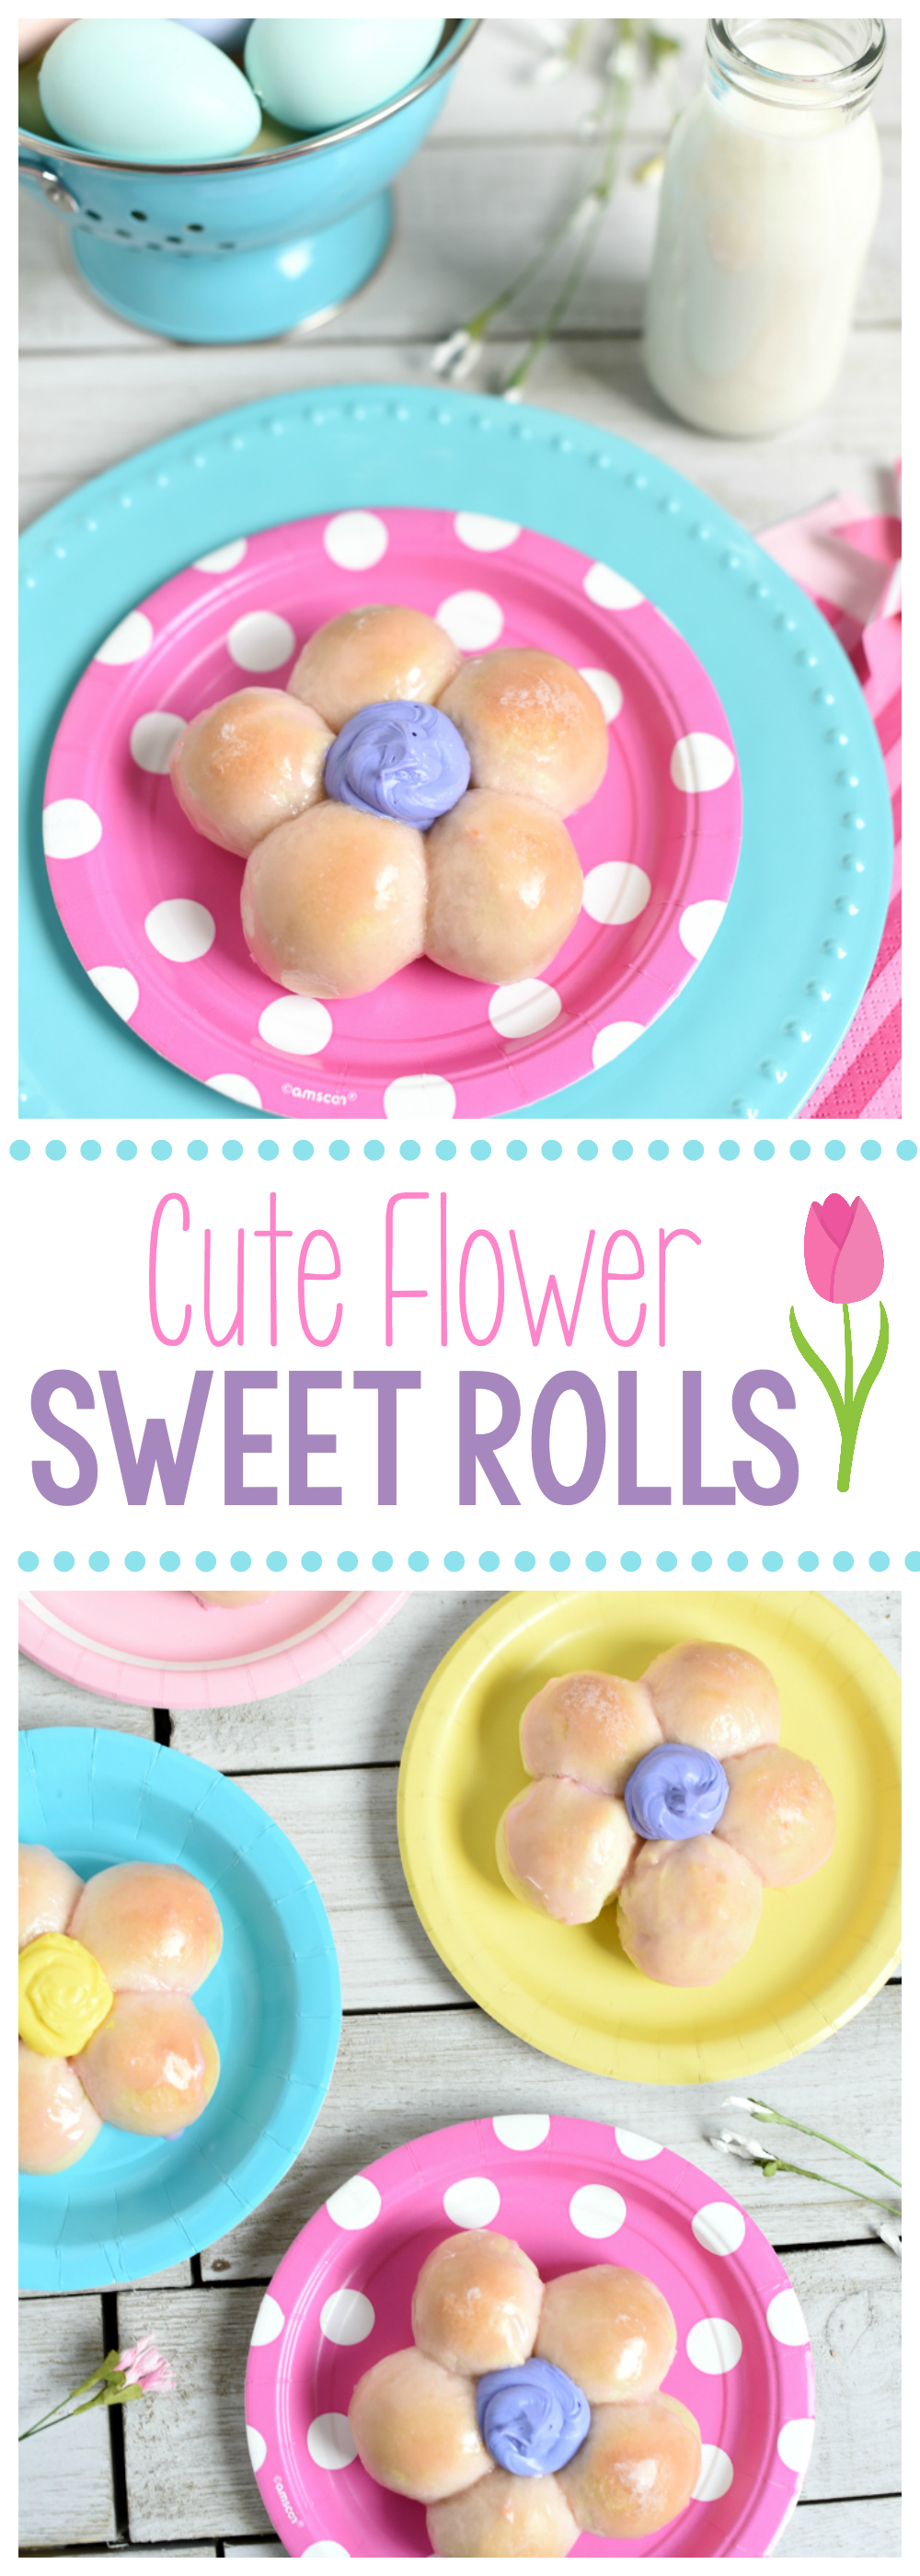 Sweet Rolls Shaped Like Flowers for Easter Brunch